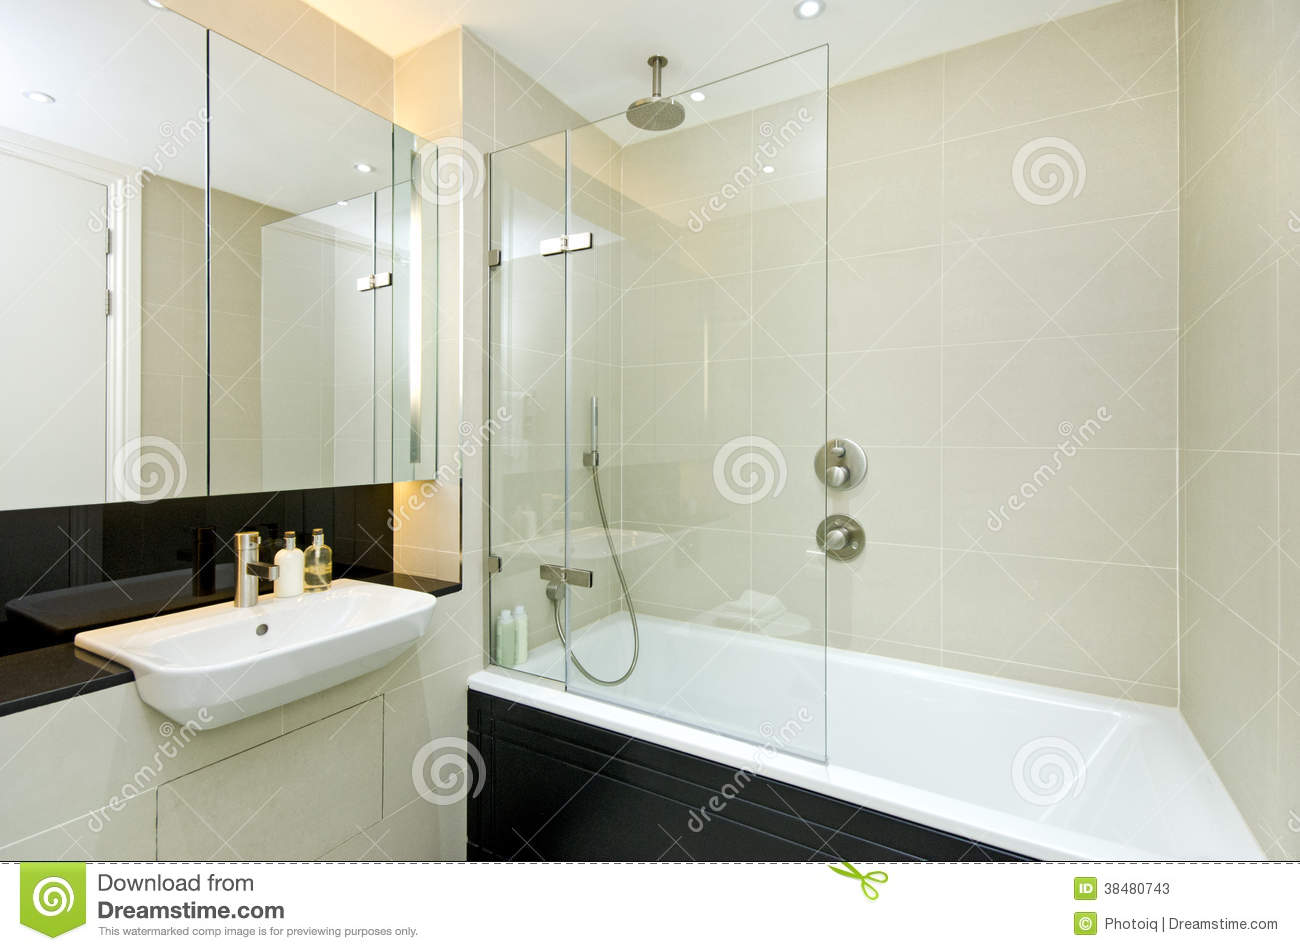 Contemporary Ensuite Bathroom Stock Image - Image of glass, flat ...